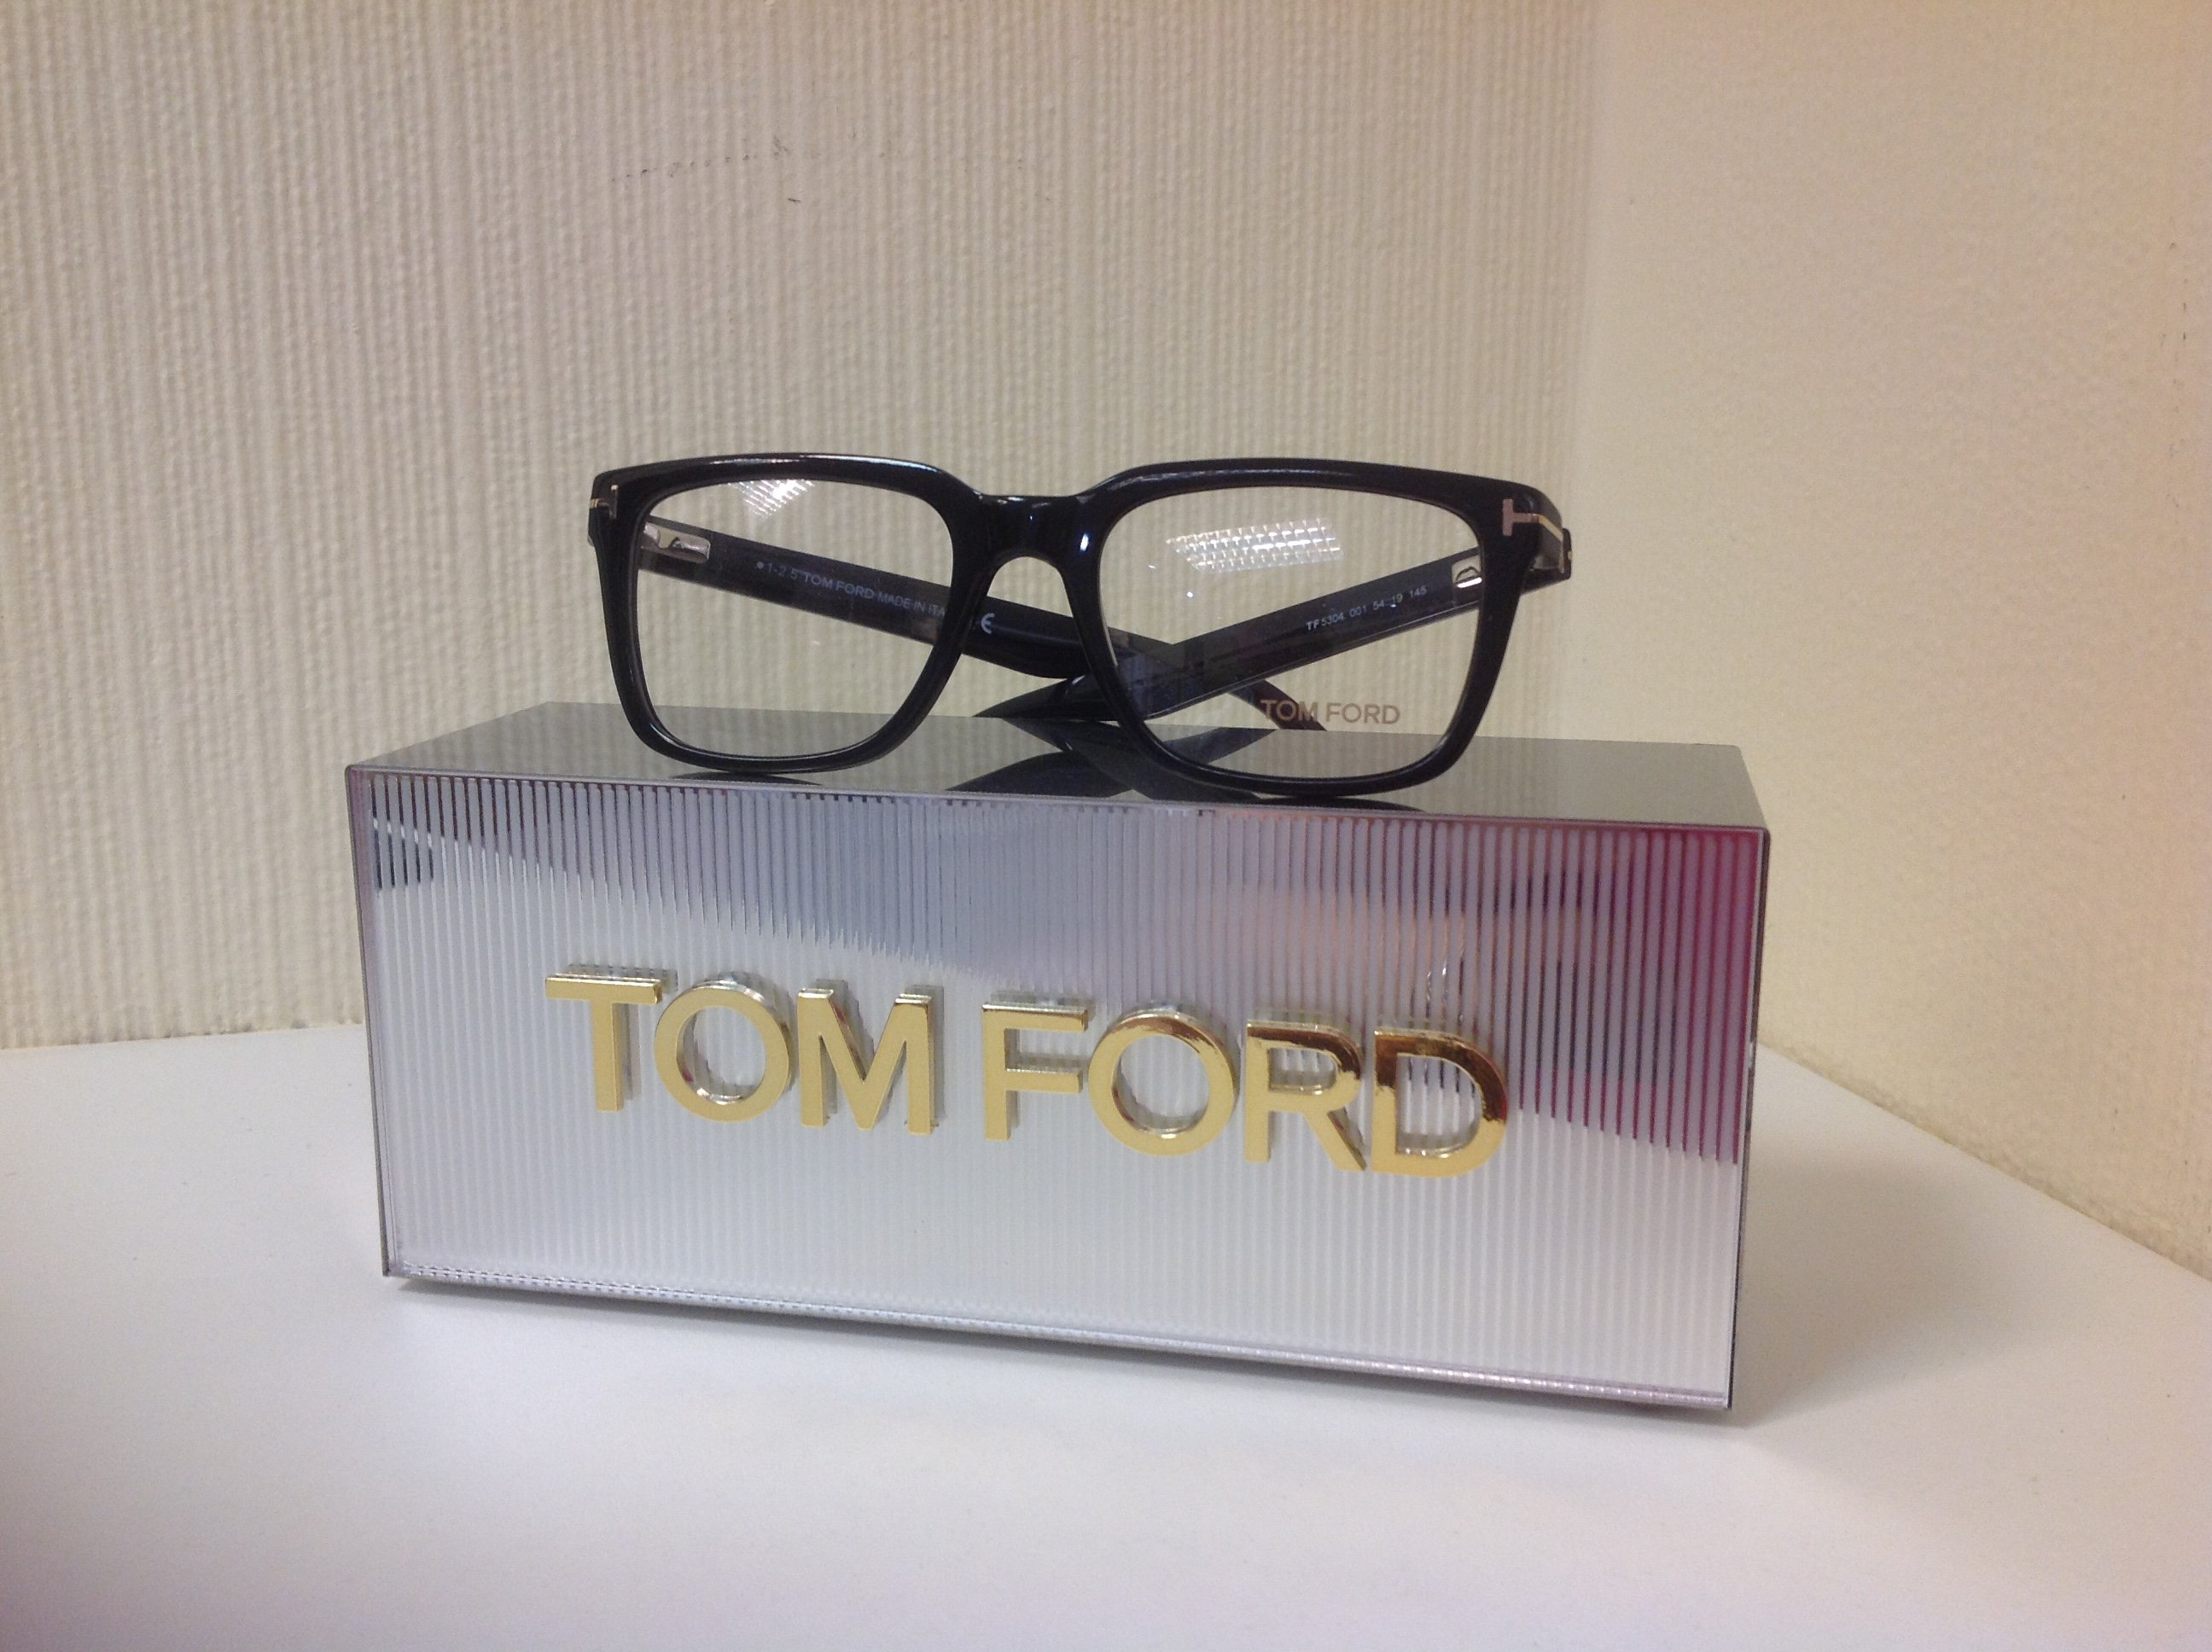 Dark-rimmed glasses by Tom Ford